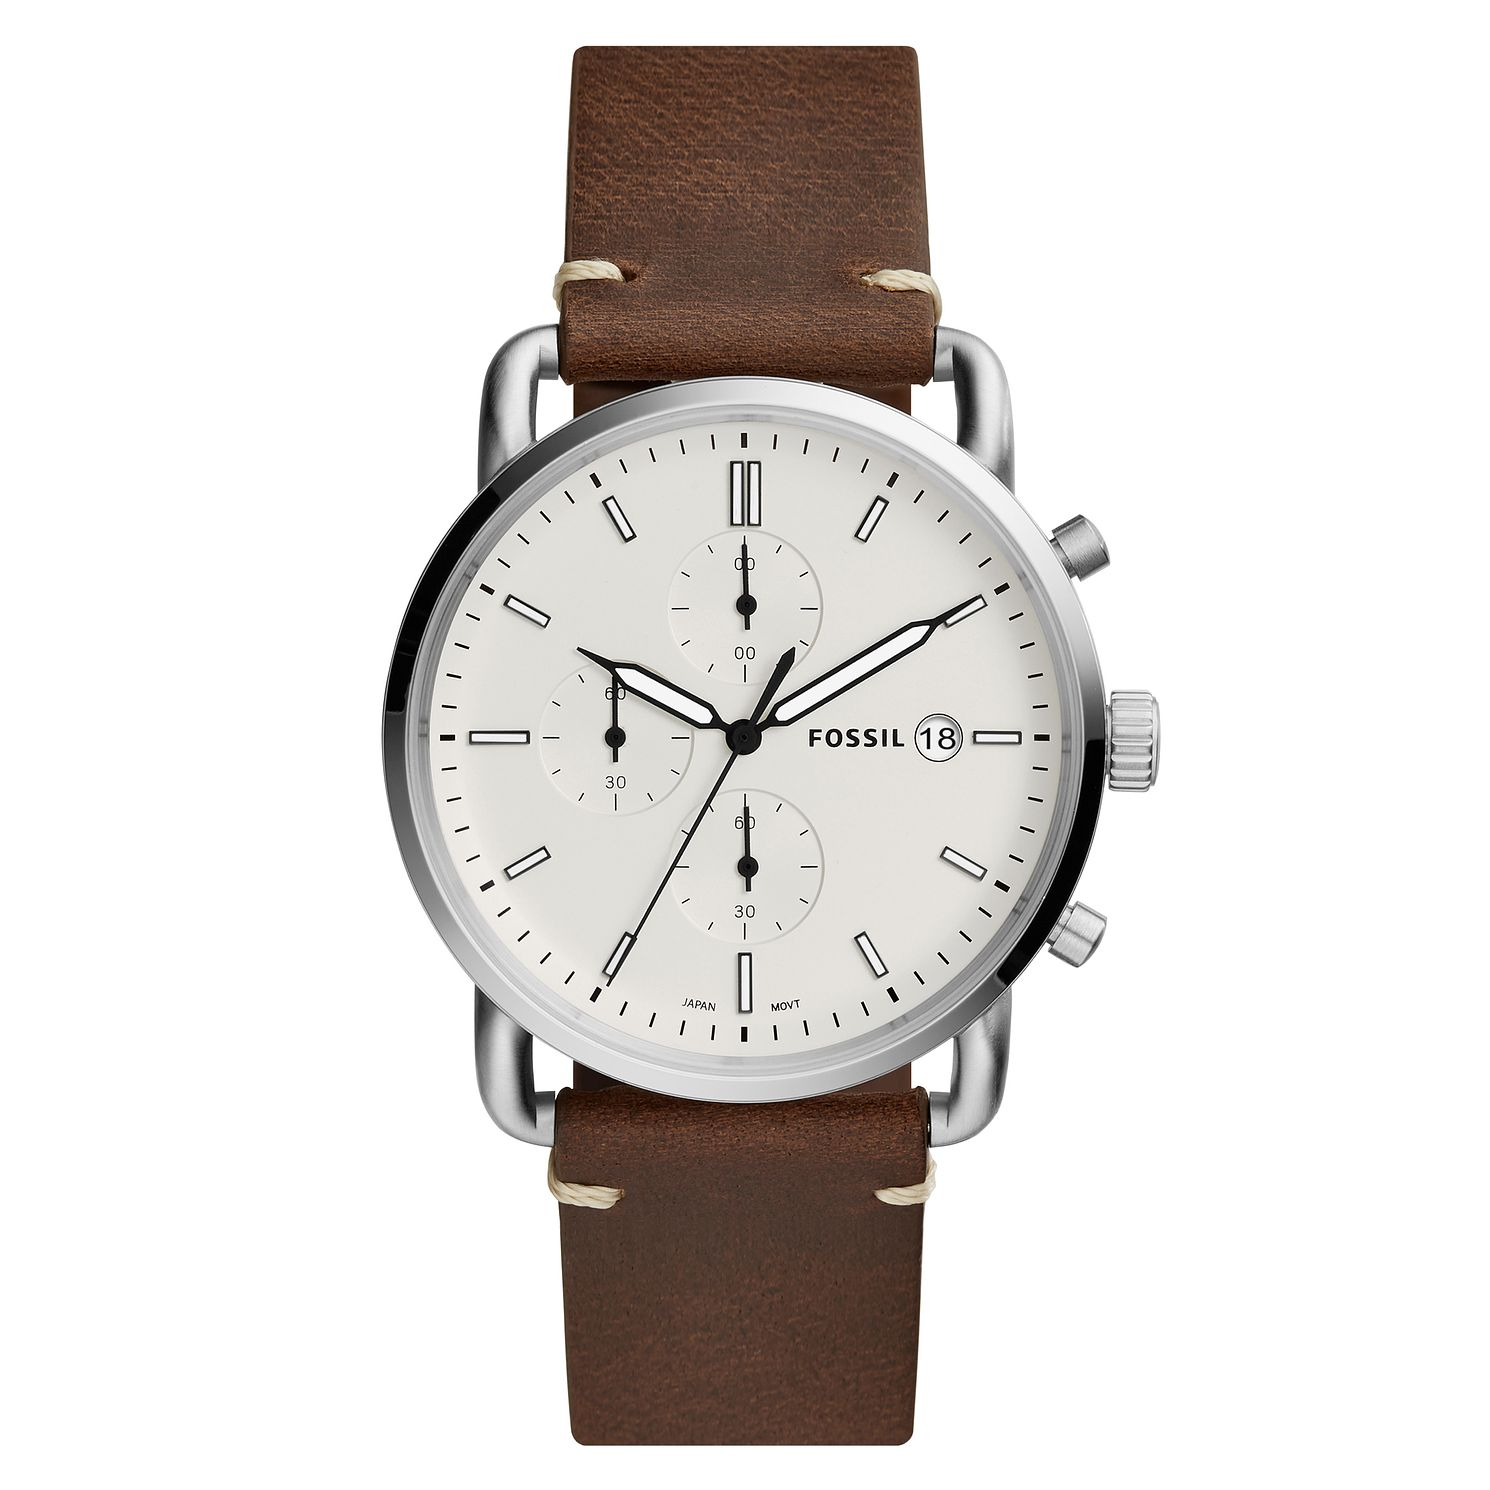 Fossil Commuter Men's Chronograph Brown Strap Watch - Product number 4166752